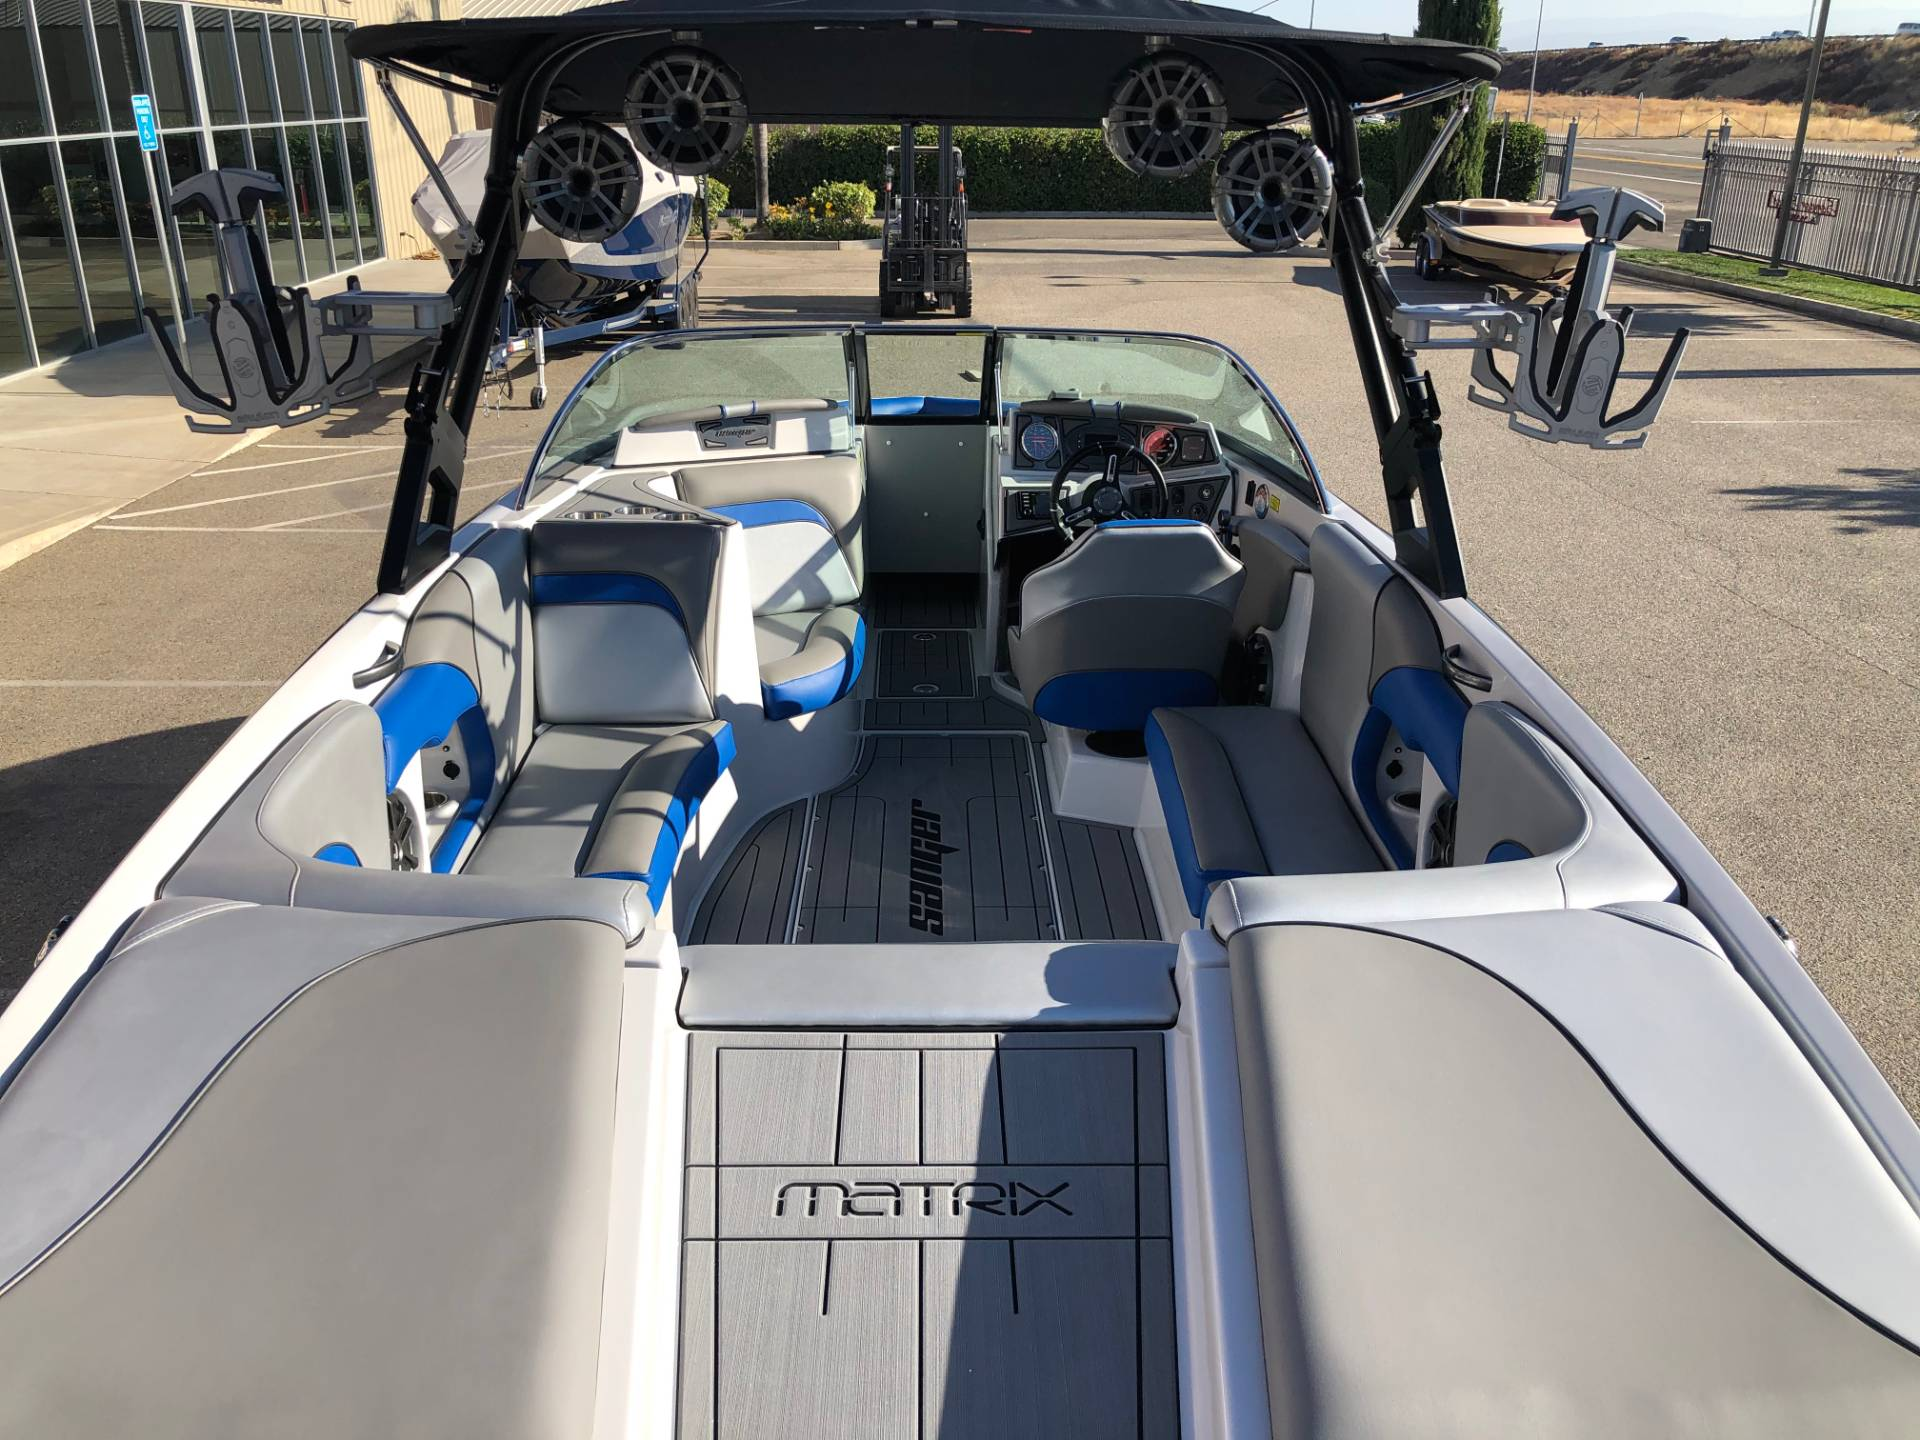 2021 Sanger Boats 231 SL in Madera, California - Photo 6